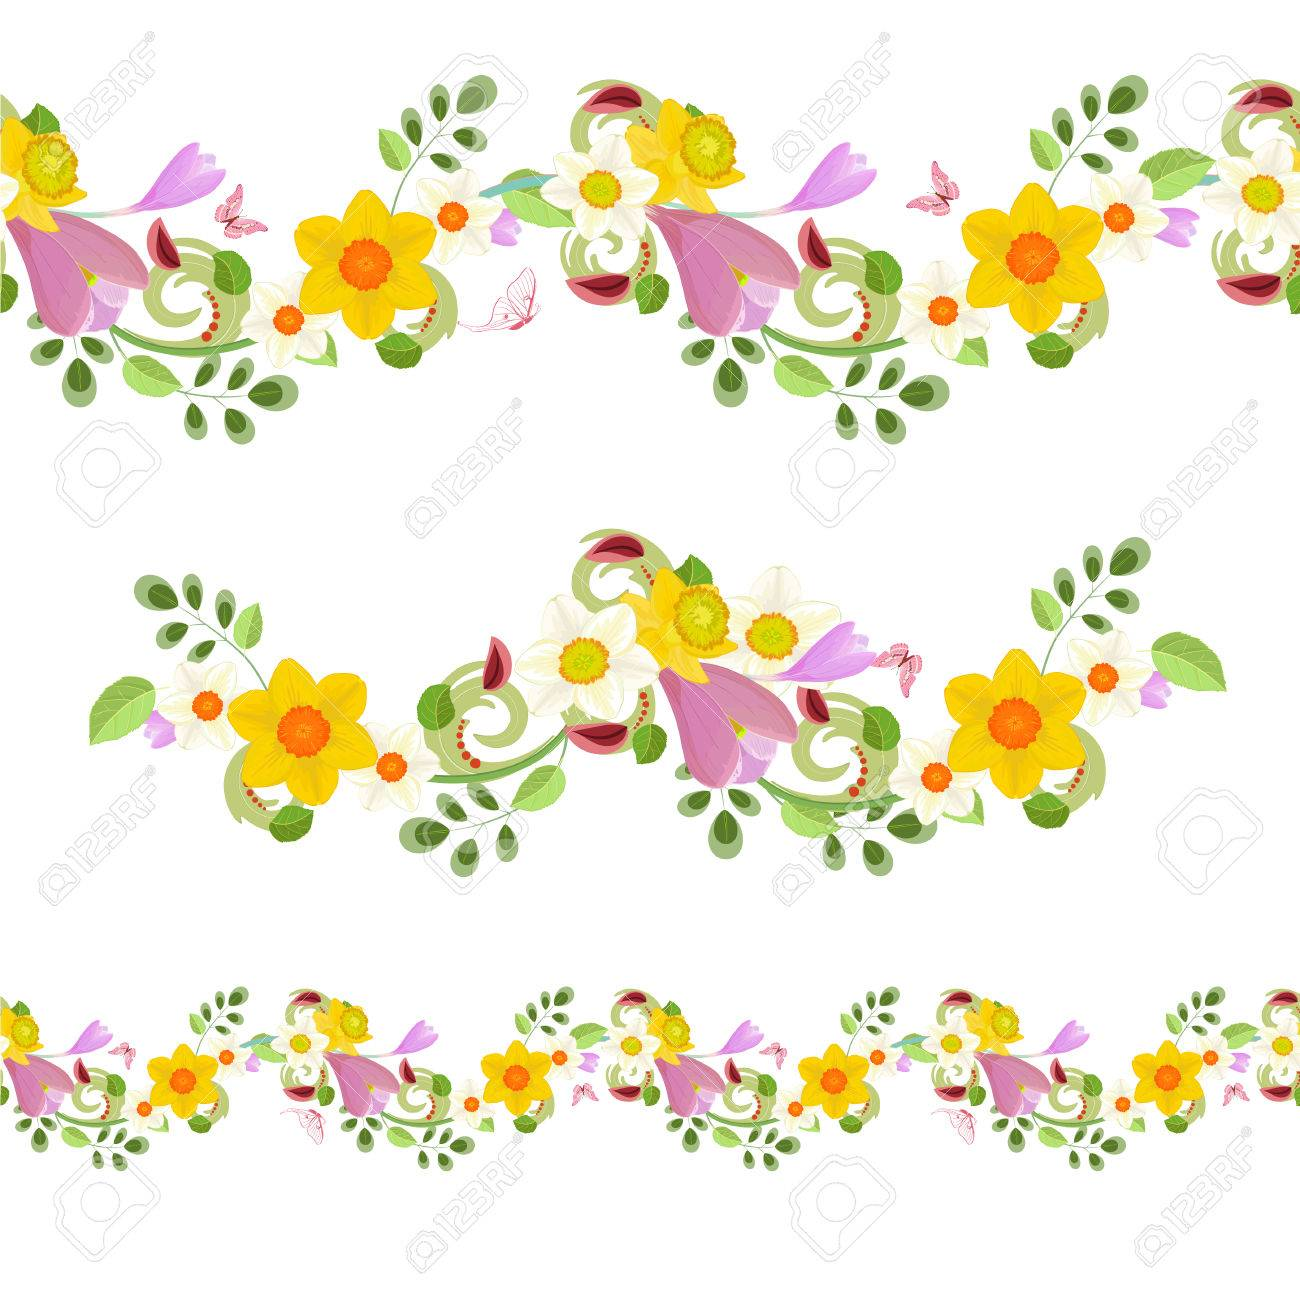 Collection Horizontal Seamless Borders With Spring Flowers Royalty